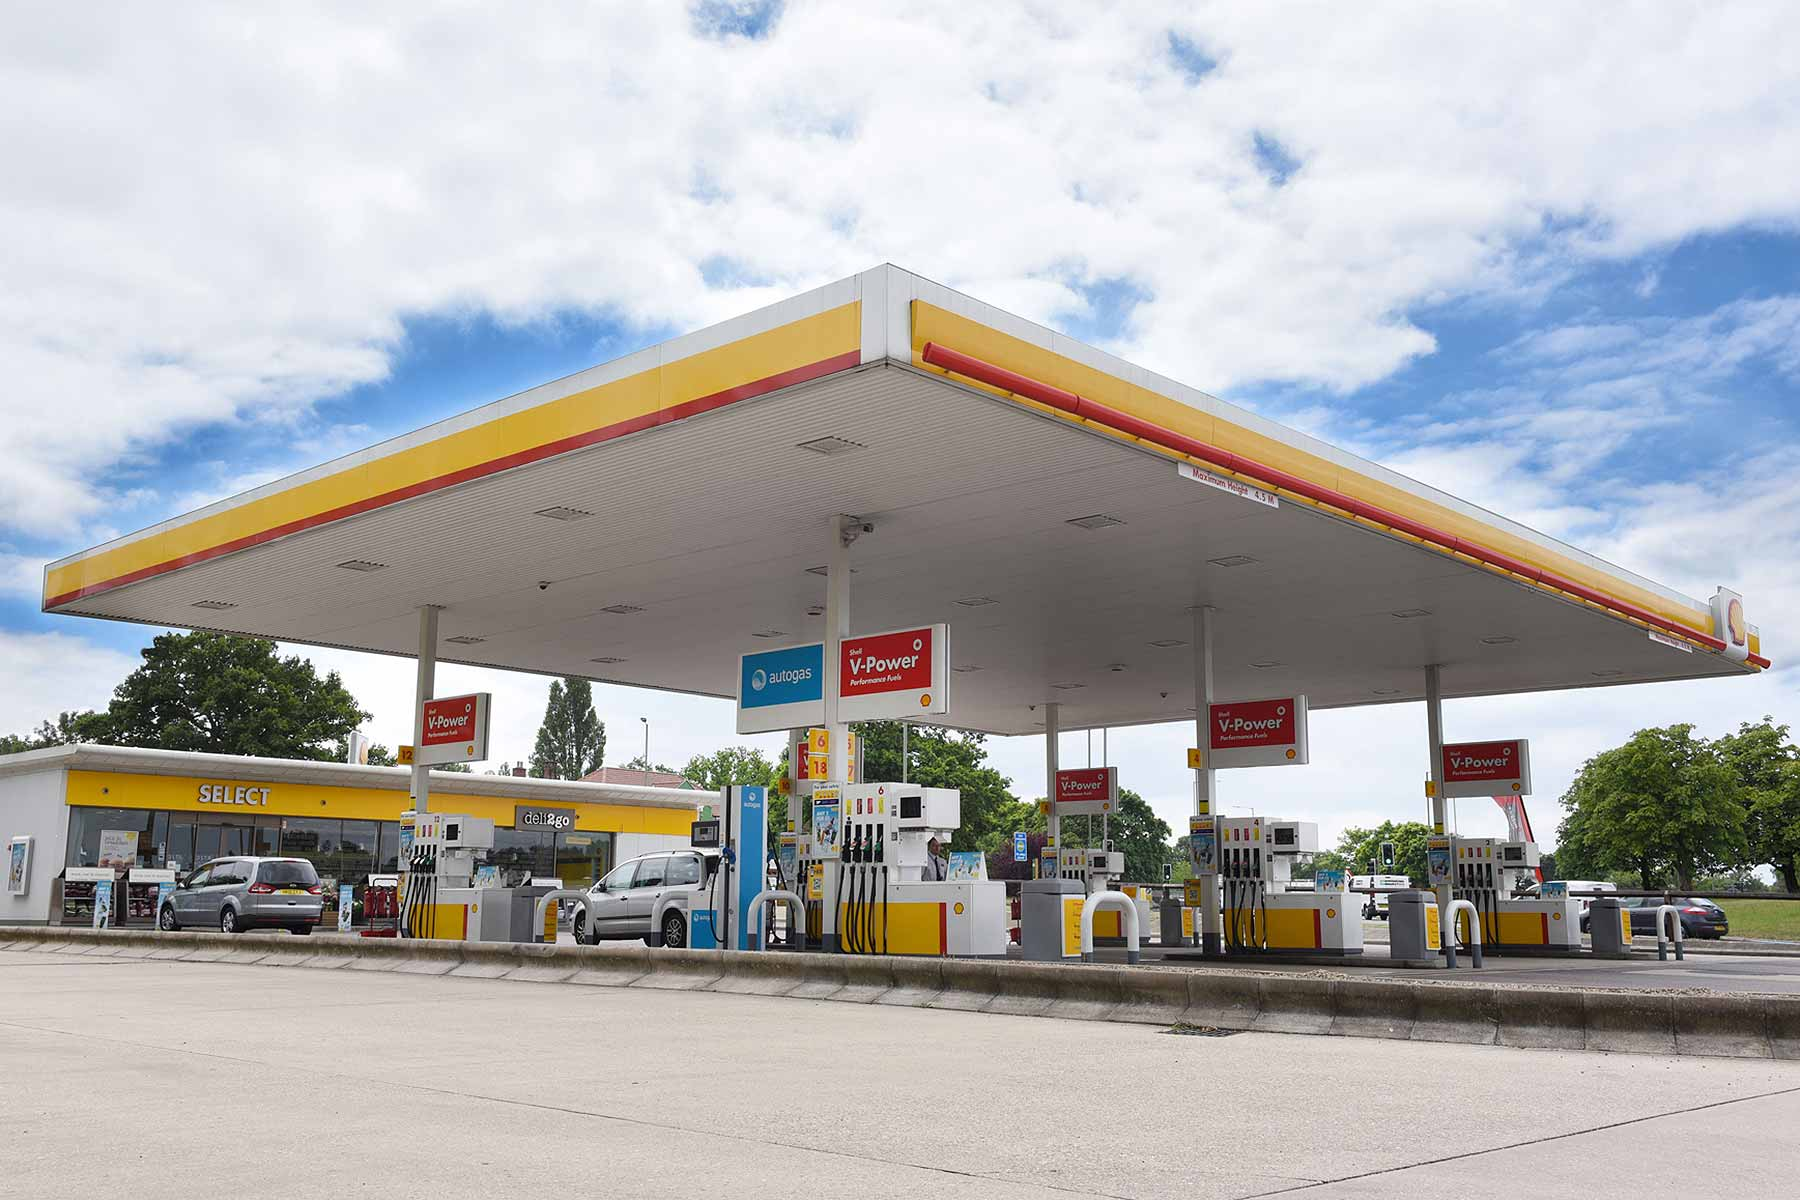 Shell filling station